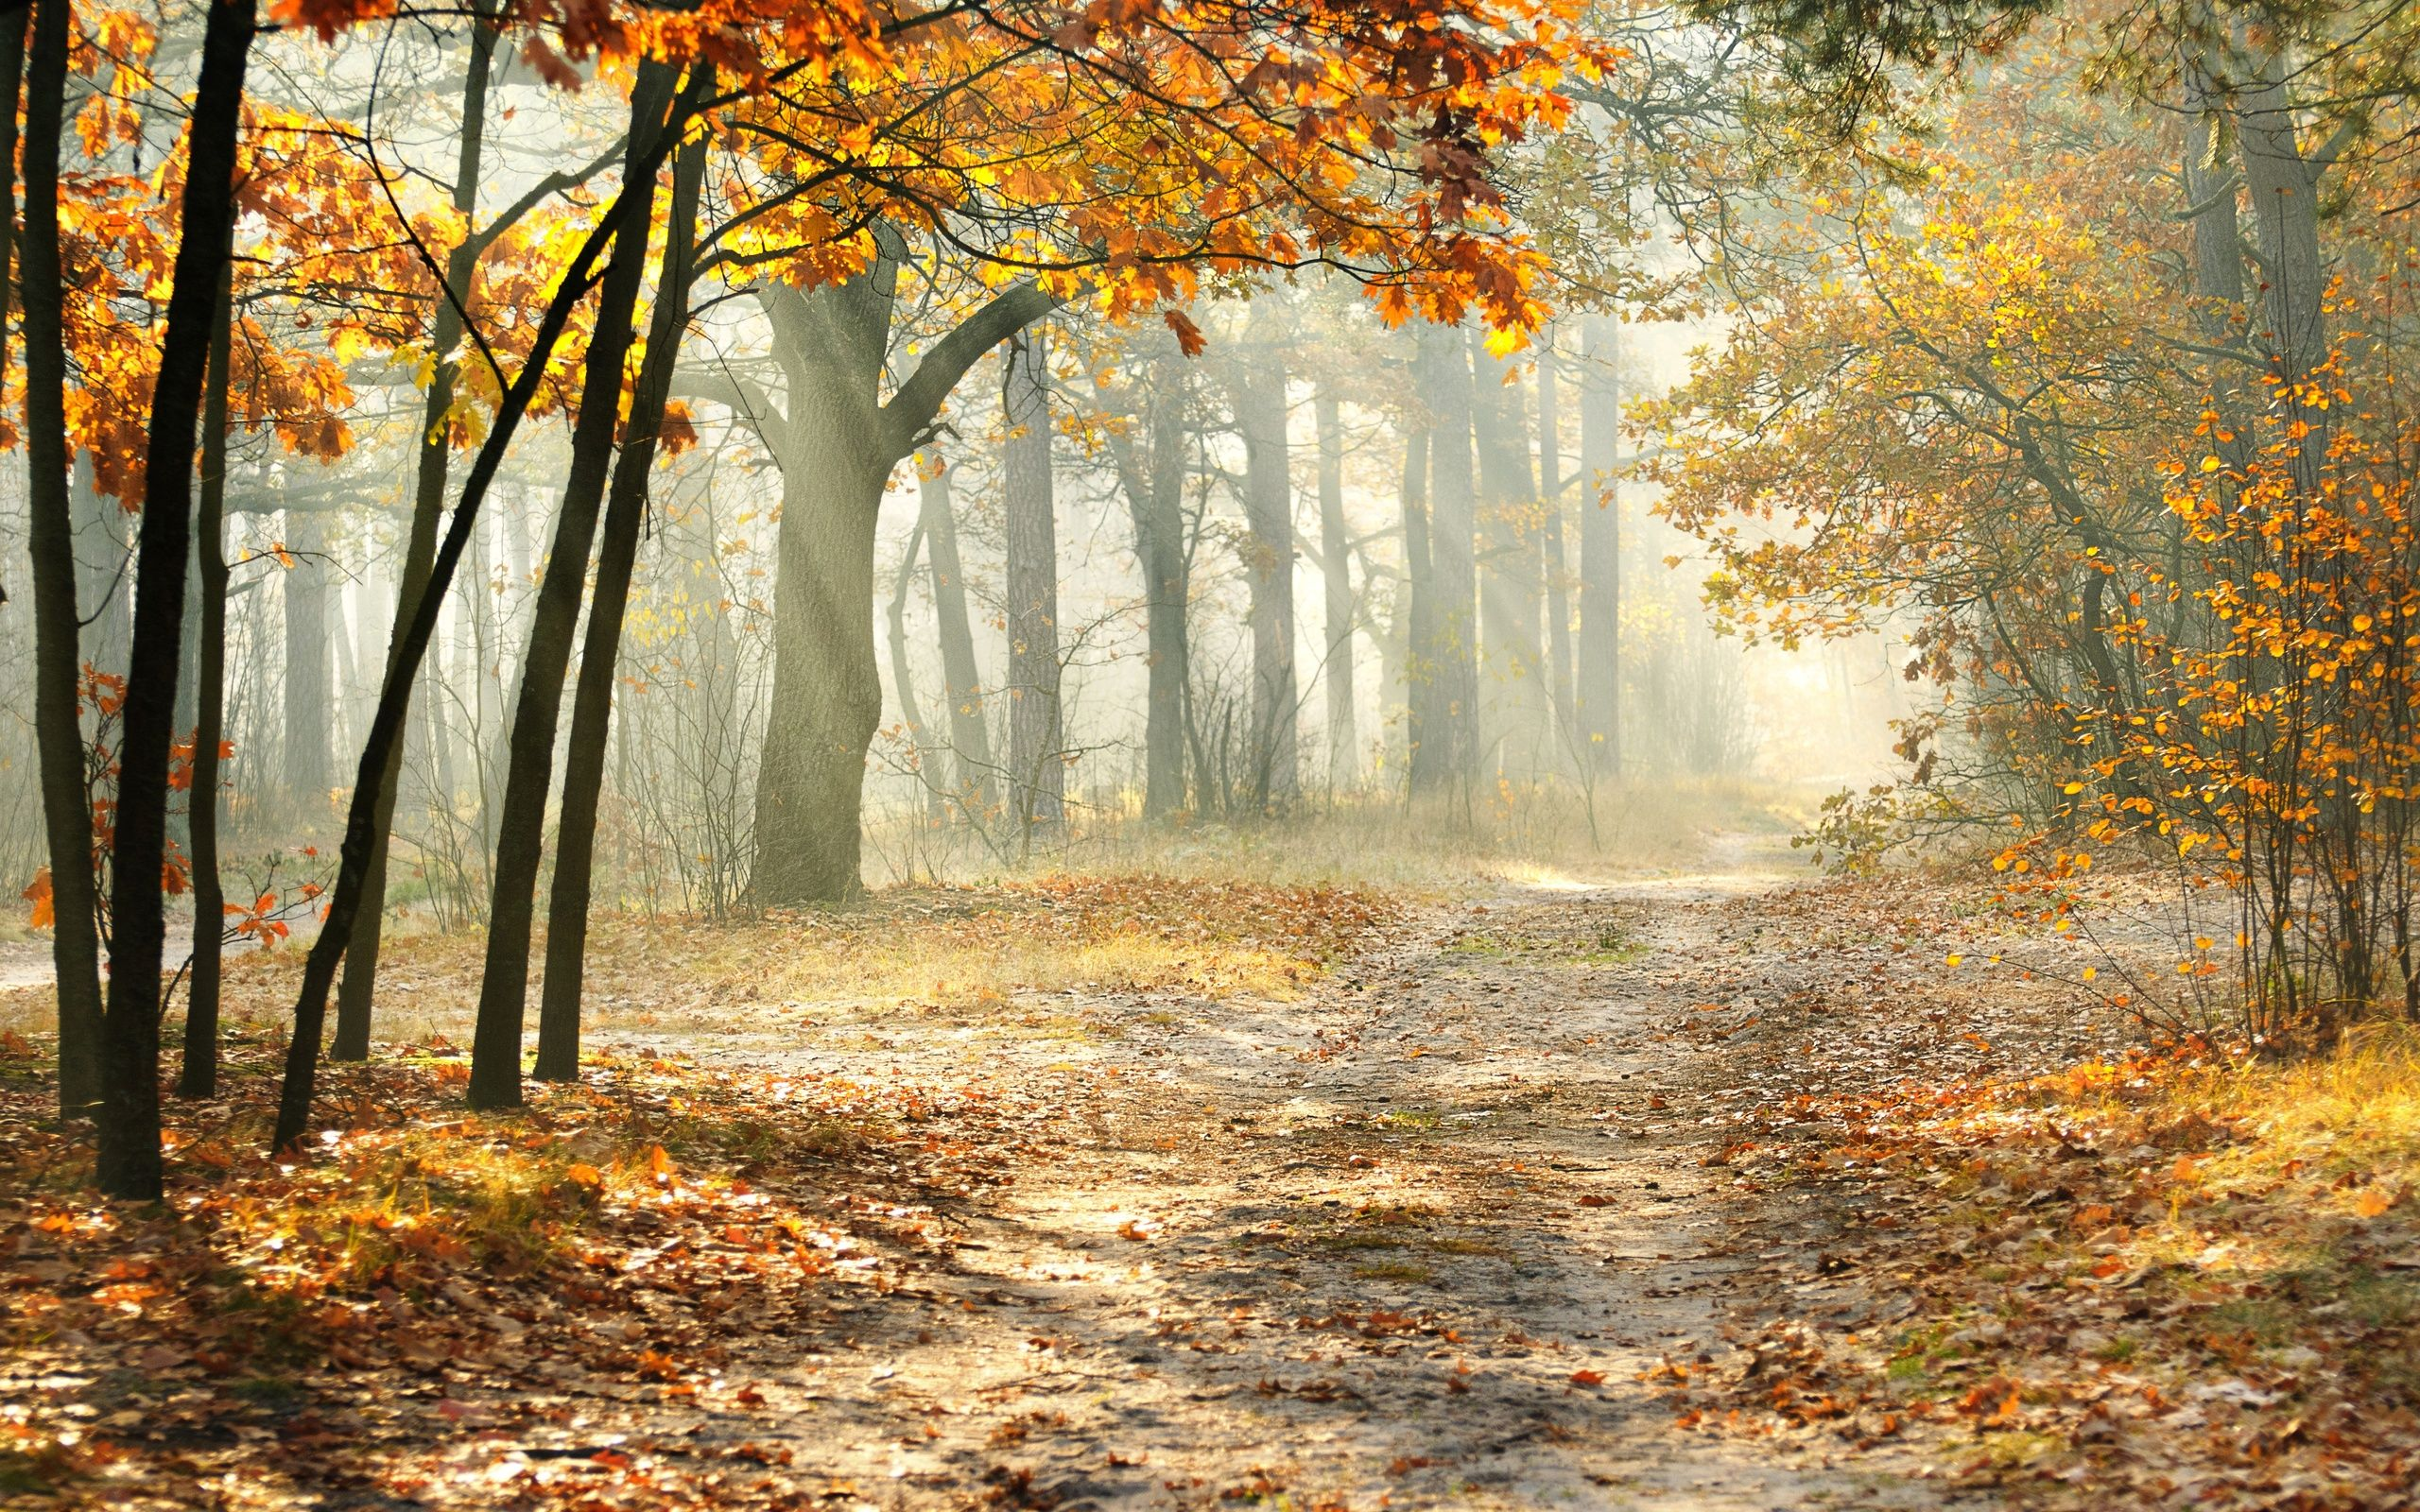 A road through the yellowed forest